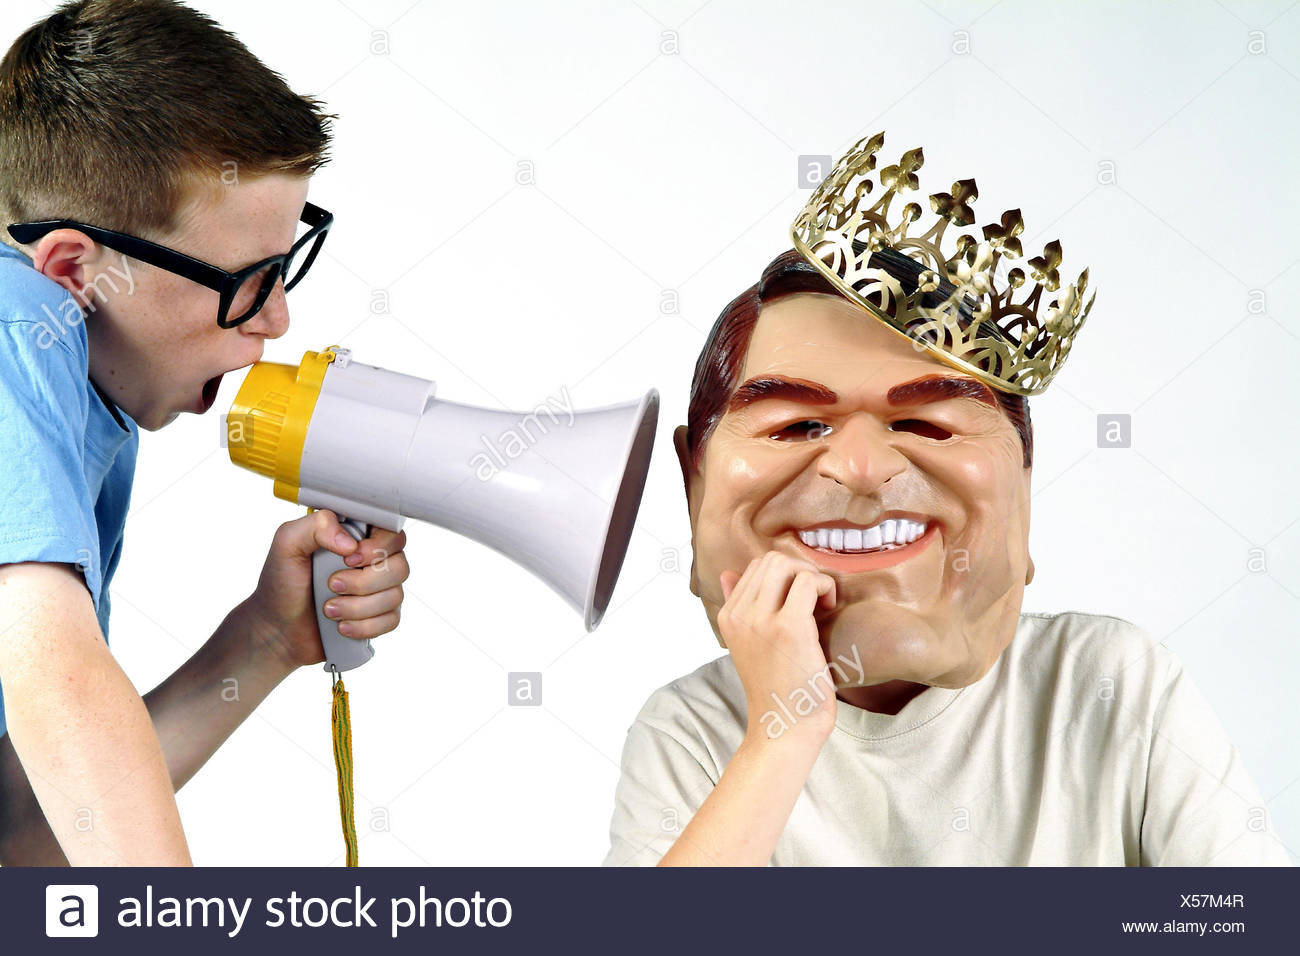 Boy, Gerhard Schröder's mask, crown, portrait, friend, glasses, megaphone, ear, shout young person, 13 years, lining, panels, mask, Gerhard Schröder, German Federal Chancellor, model, career plans, costume, costuming, joke, humor, fun, wittily, anonymity, personality, caricature, king, golden crown, signal, loudly, volume, attention, deaf, disinterest, studio - Stock Image